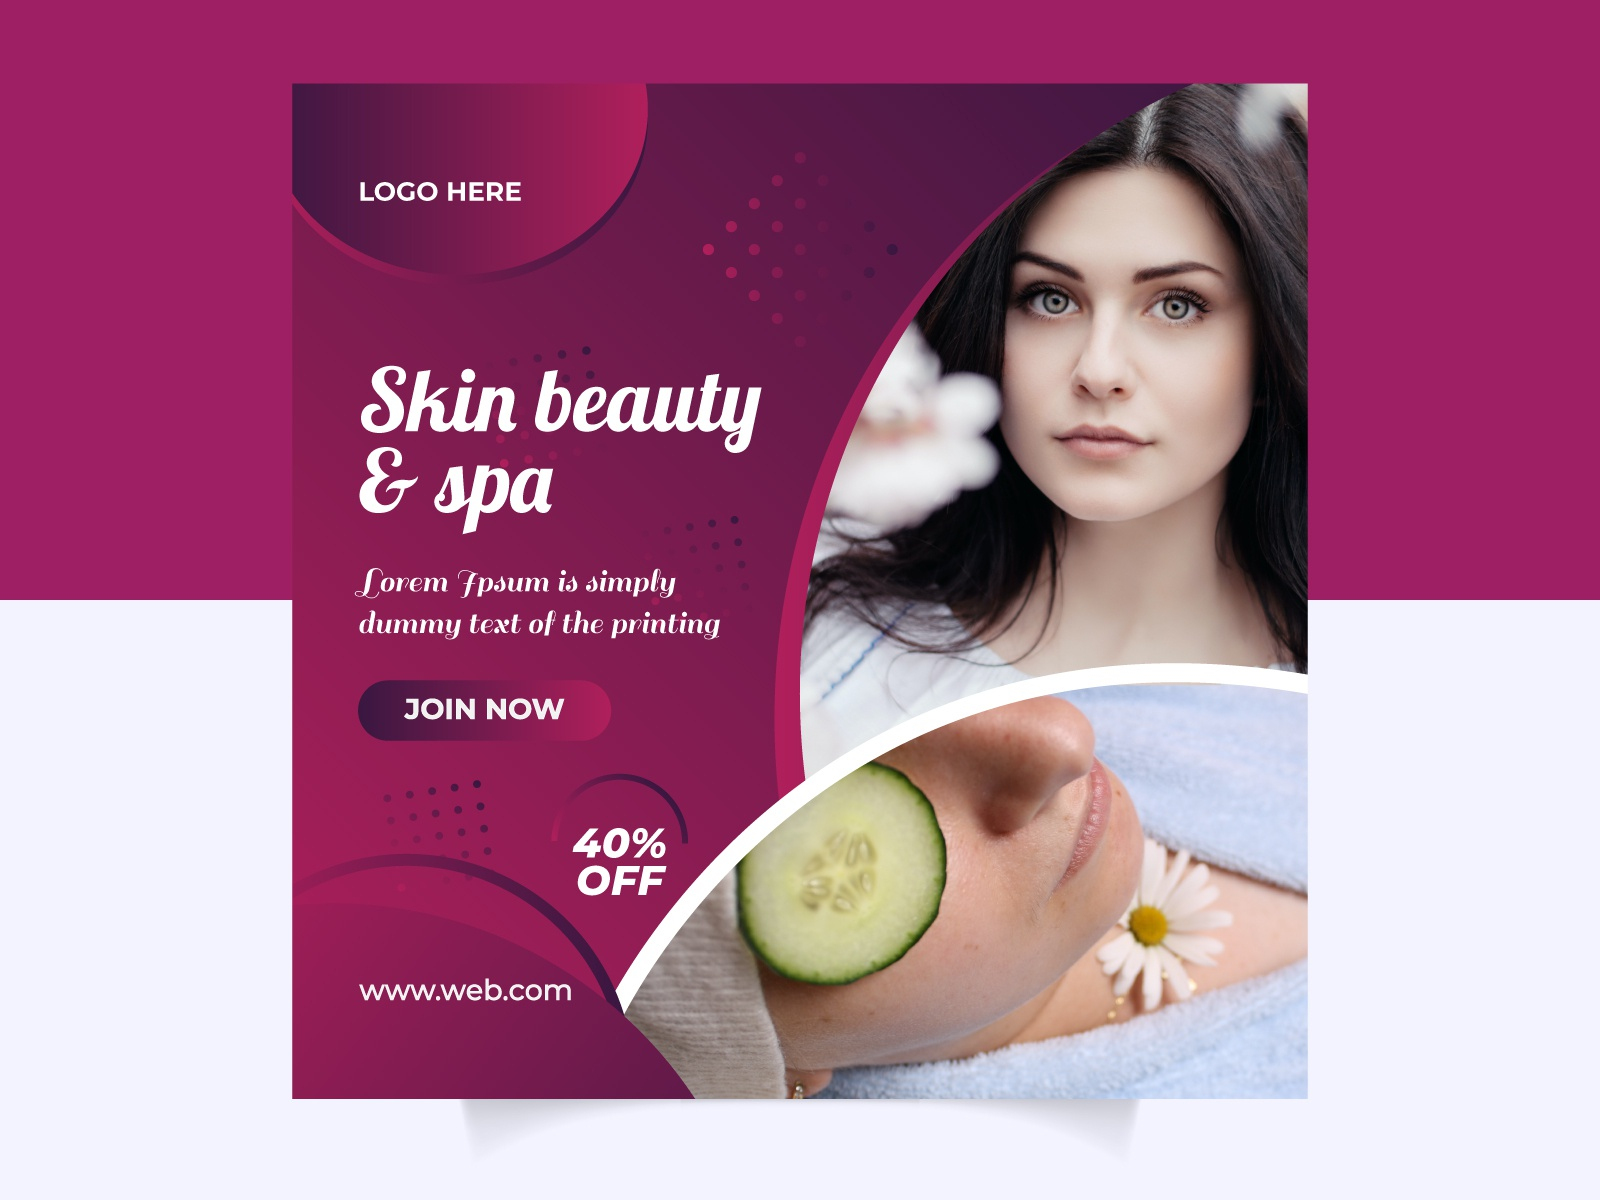 Beauty And Spa Social Media Ads Post Template Design By Aybor Rahman On Dribbble